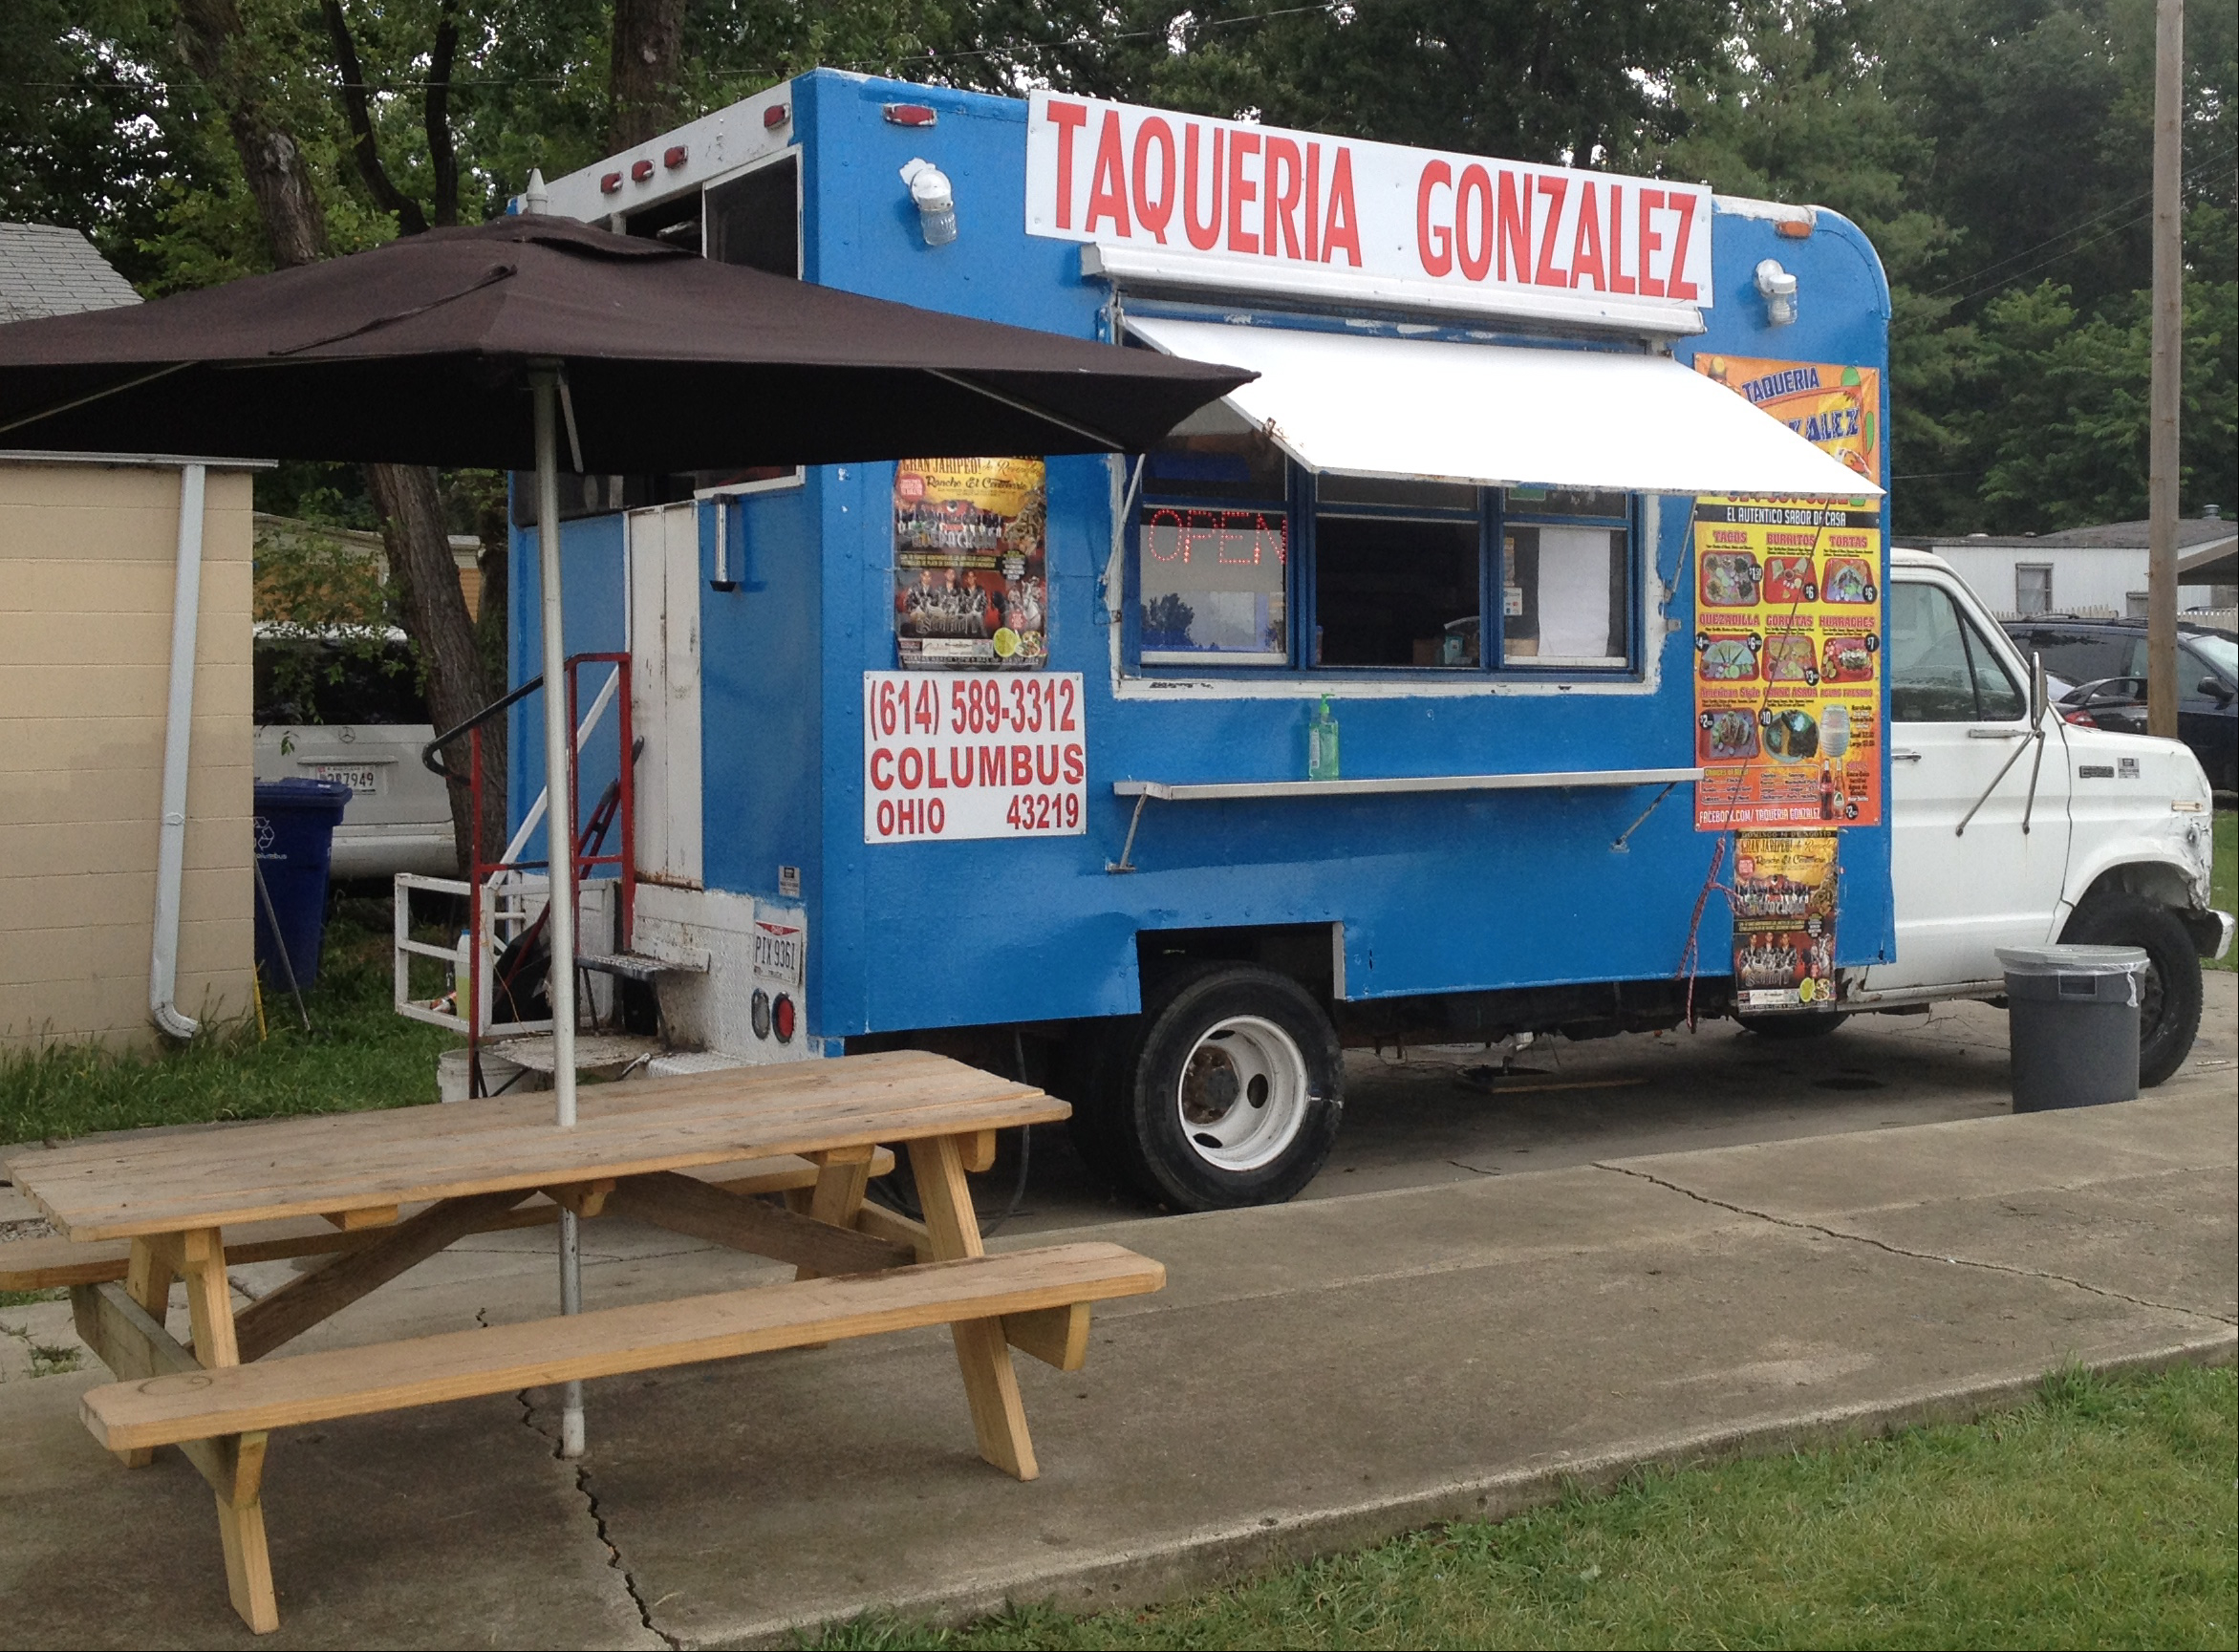 Columbus OH 43219 Phone 614 589 3312 Facebook Taqueria Gonzalez Monday To Saturday 11 Am 10 Pm Sunday 3